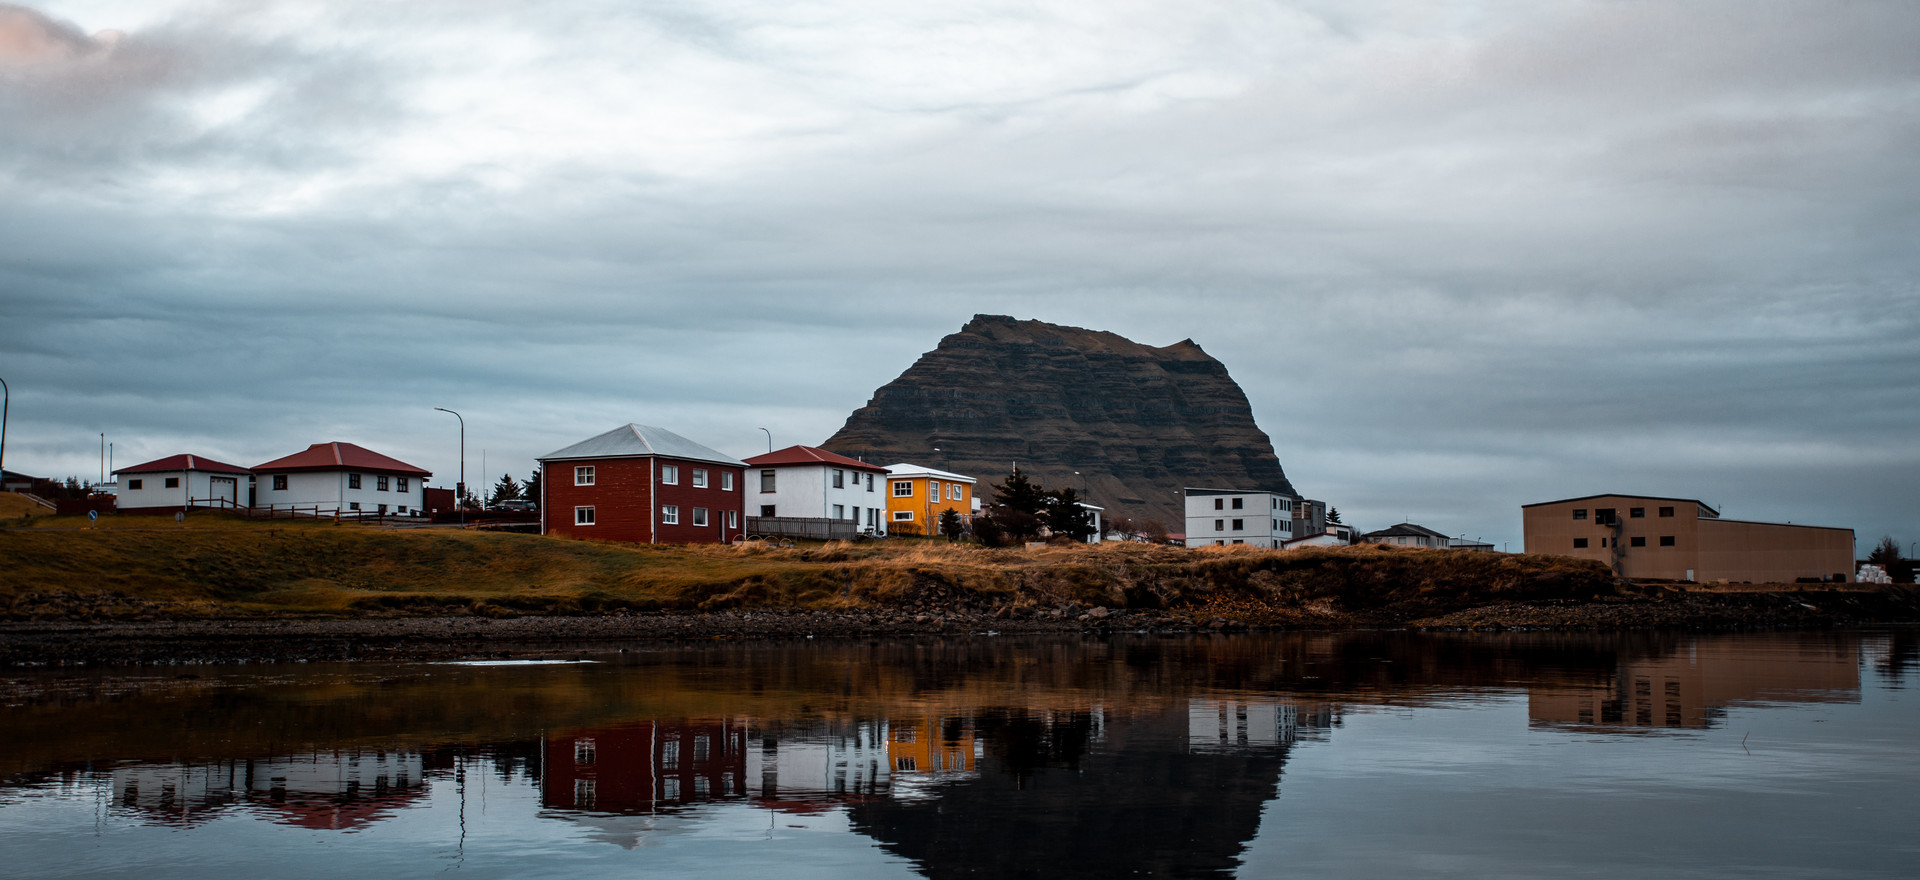 City and nature in Iceland